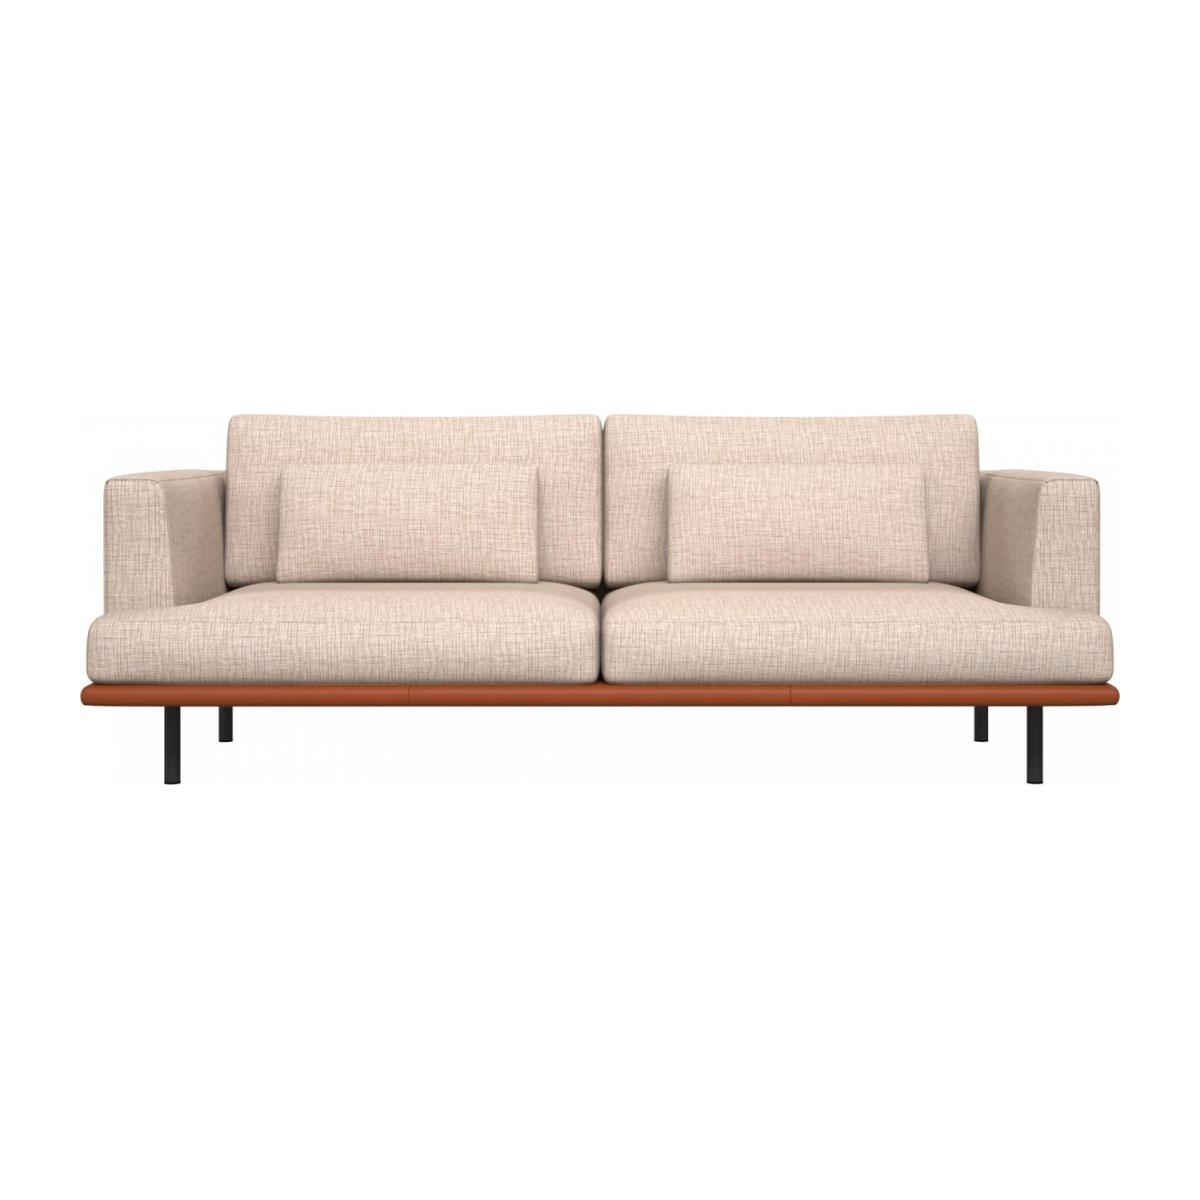 3 seater sofa in Ancio fabric, nature with base in brown leather n°2